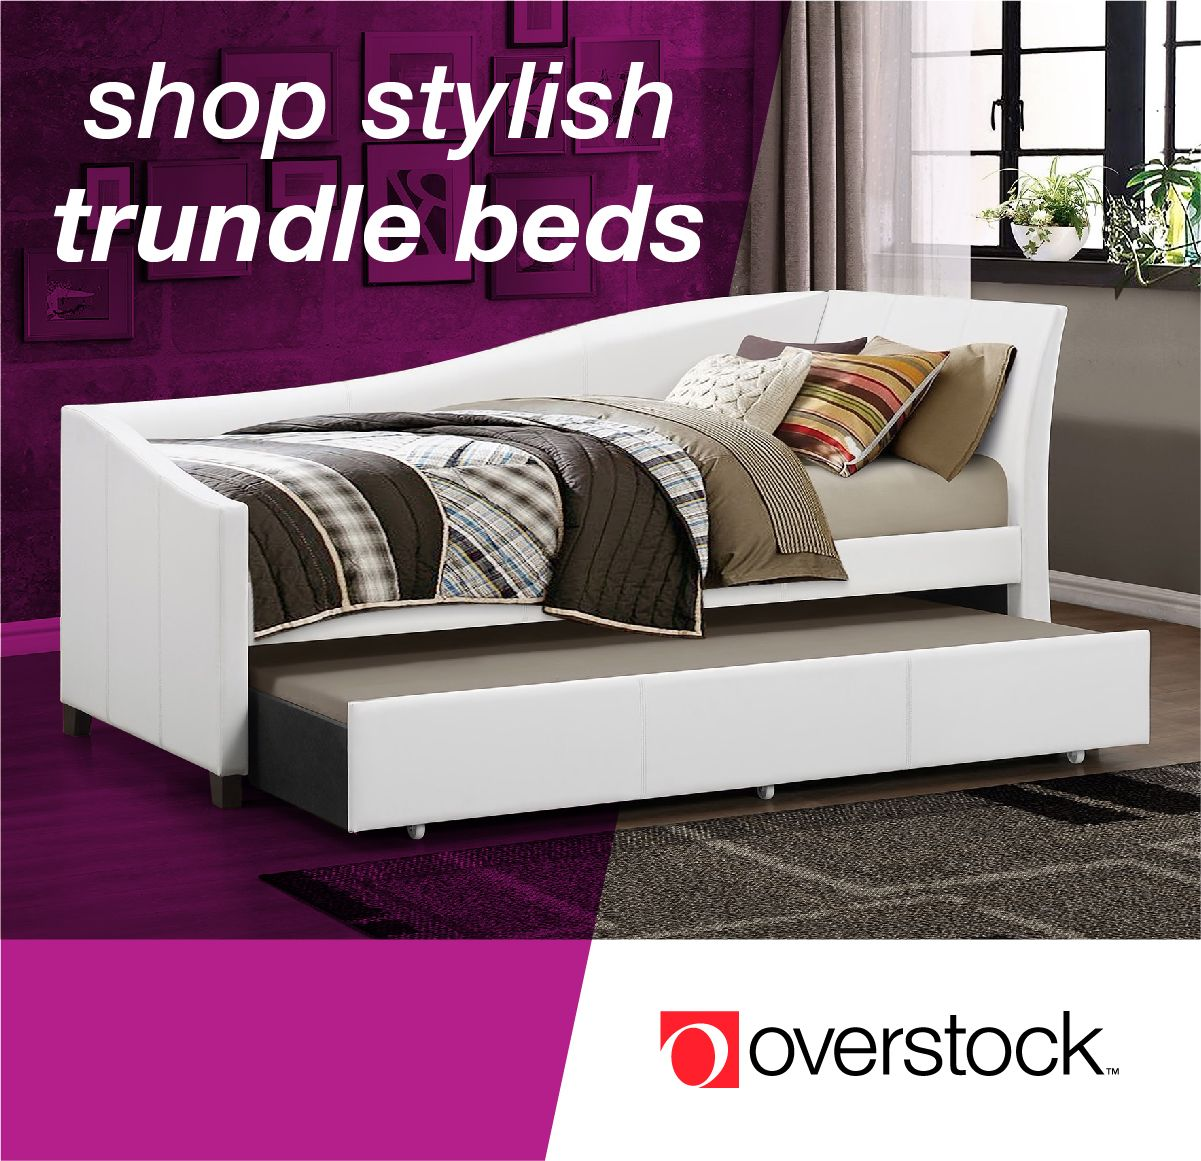 Cheap Furniture Deals Online: Browse An Impressive Selection Of Stylish Bedroom